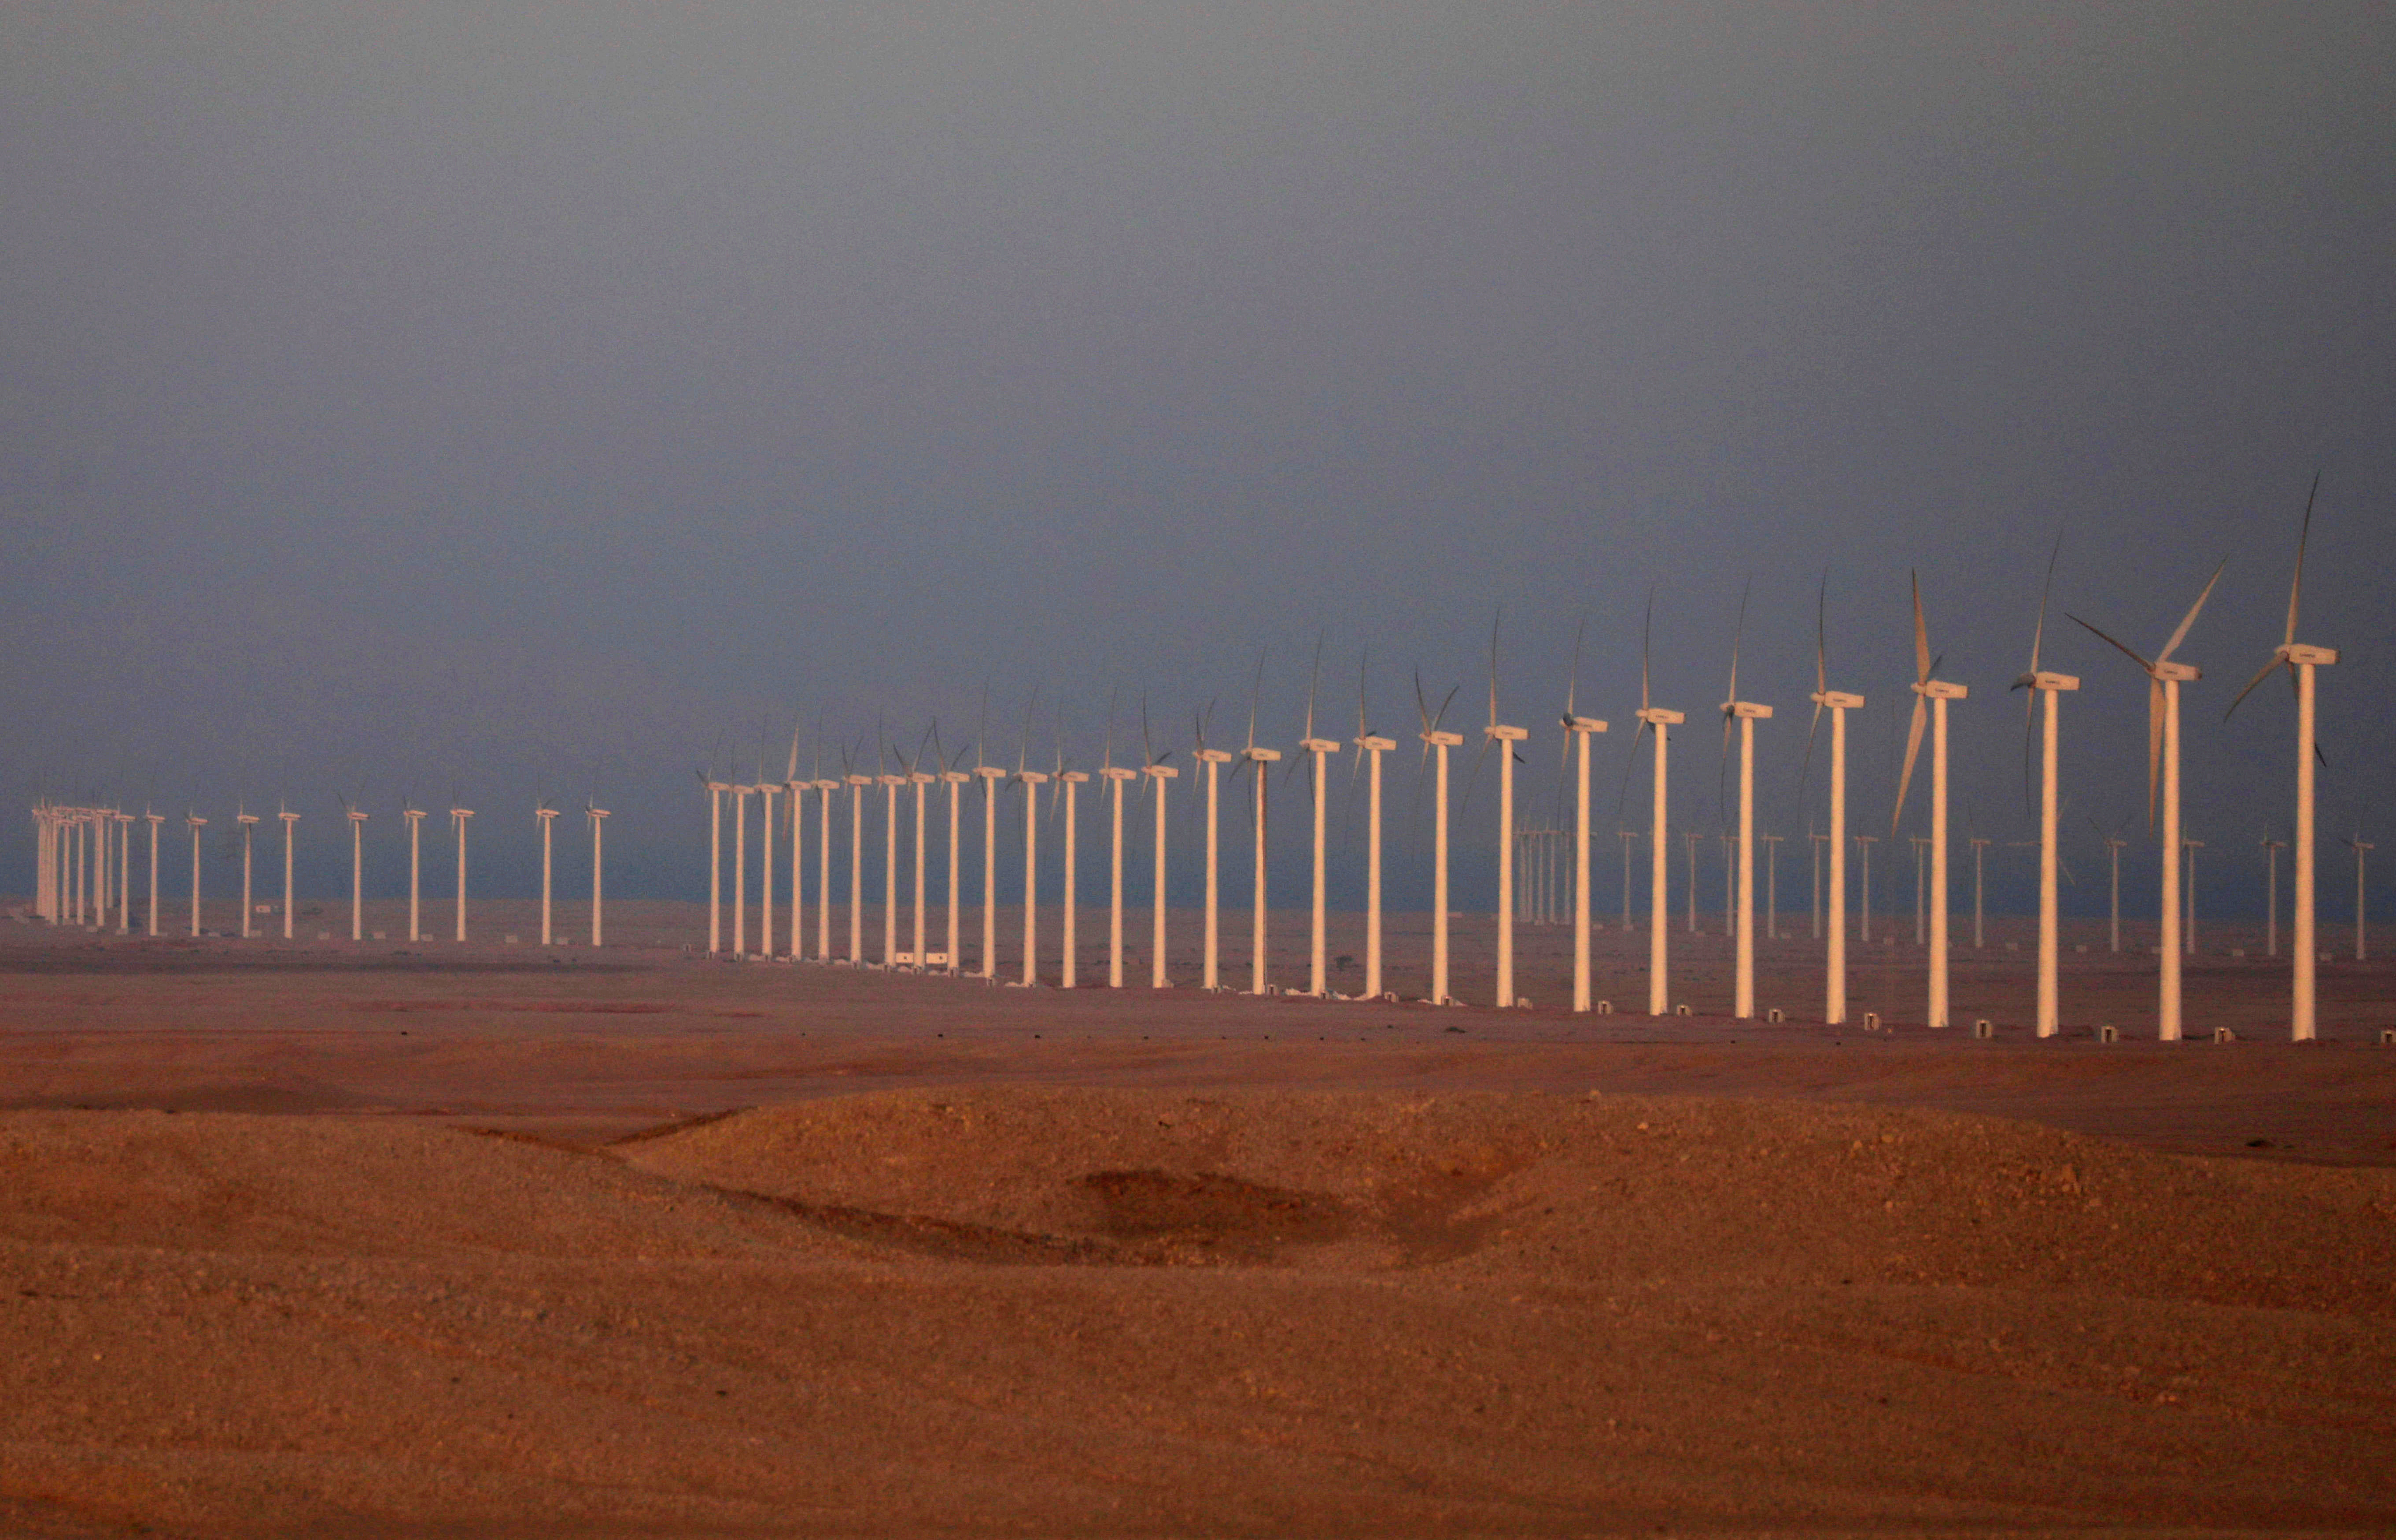 Wind turbines, which generate renewable energy, are seen on the Zafarana Wind Farm at the desert road of Suez outside of Cairo, Egypt September 1, 2020. Picture taken September 1, 2020. REUTERS/Amr Abdallah Dalsh     TPX IMAGES OF THE DAY - RC2OVI96QOYQ